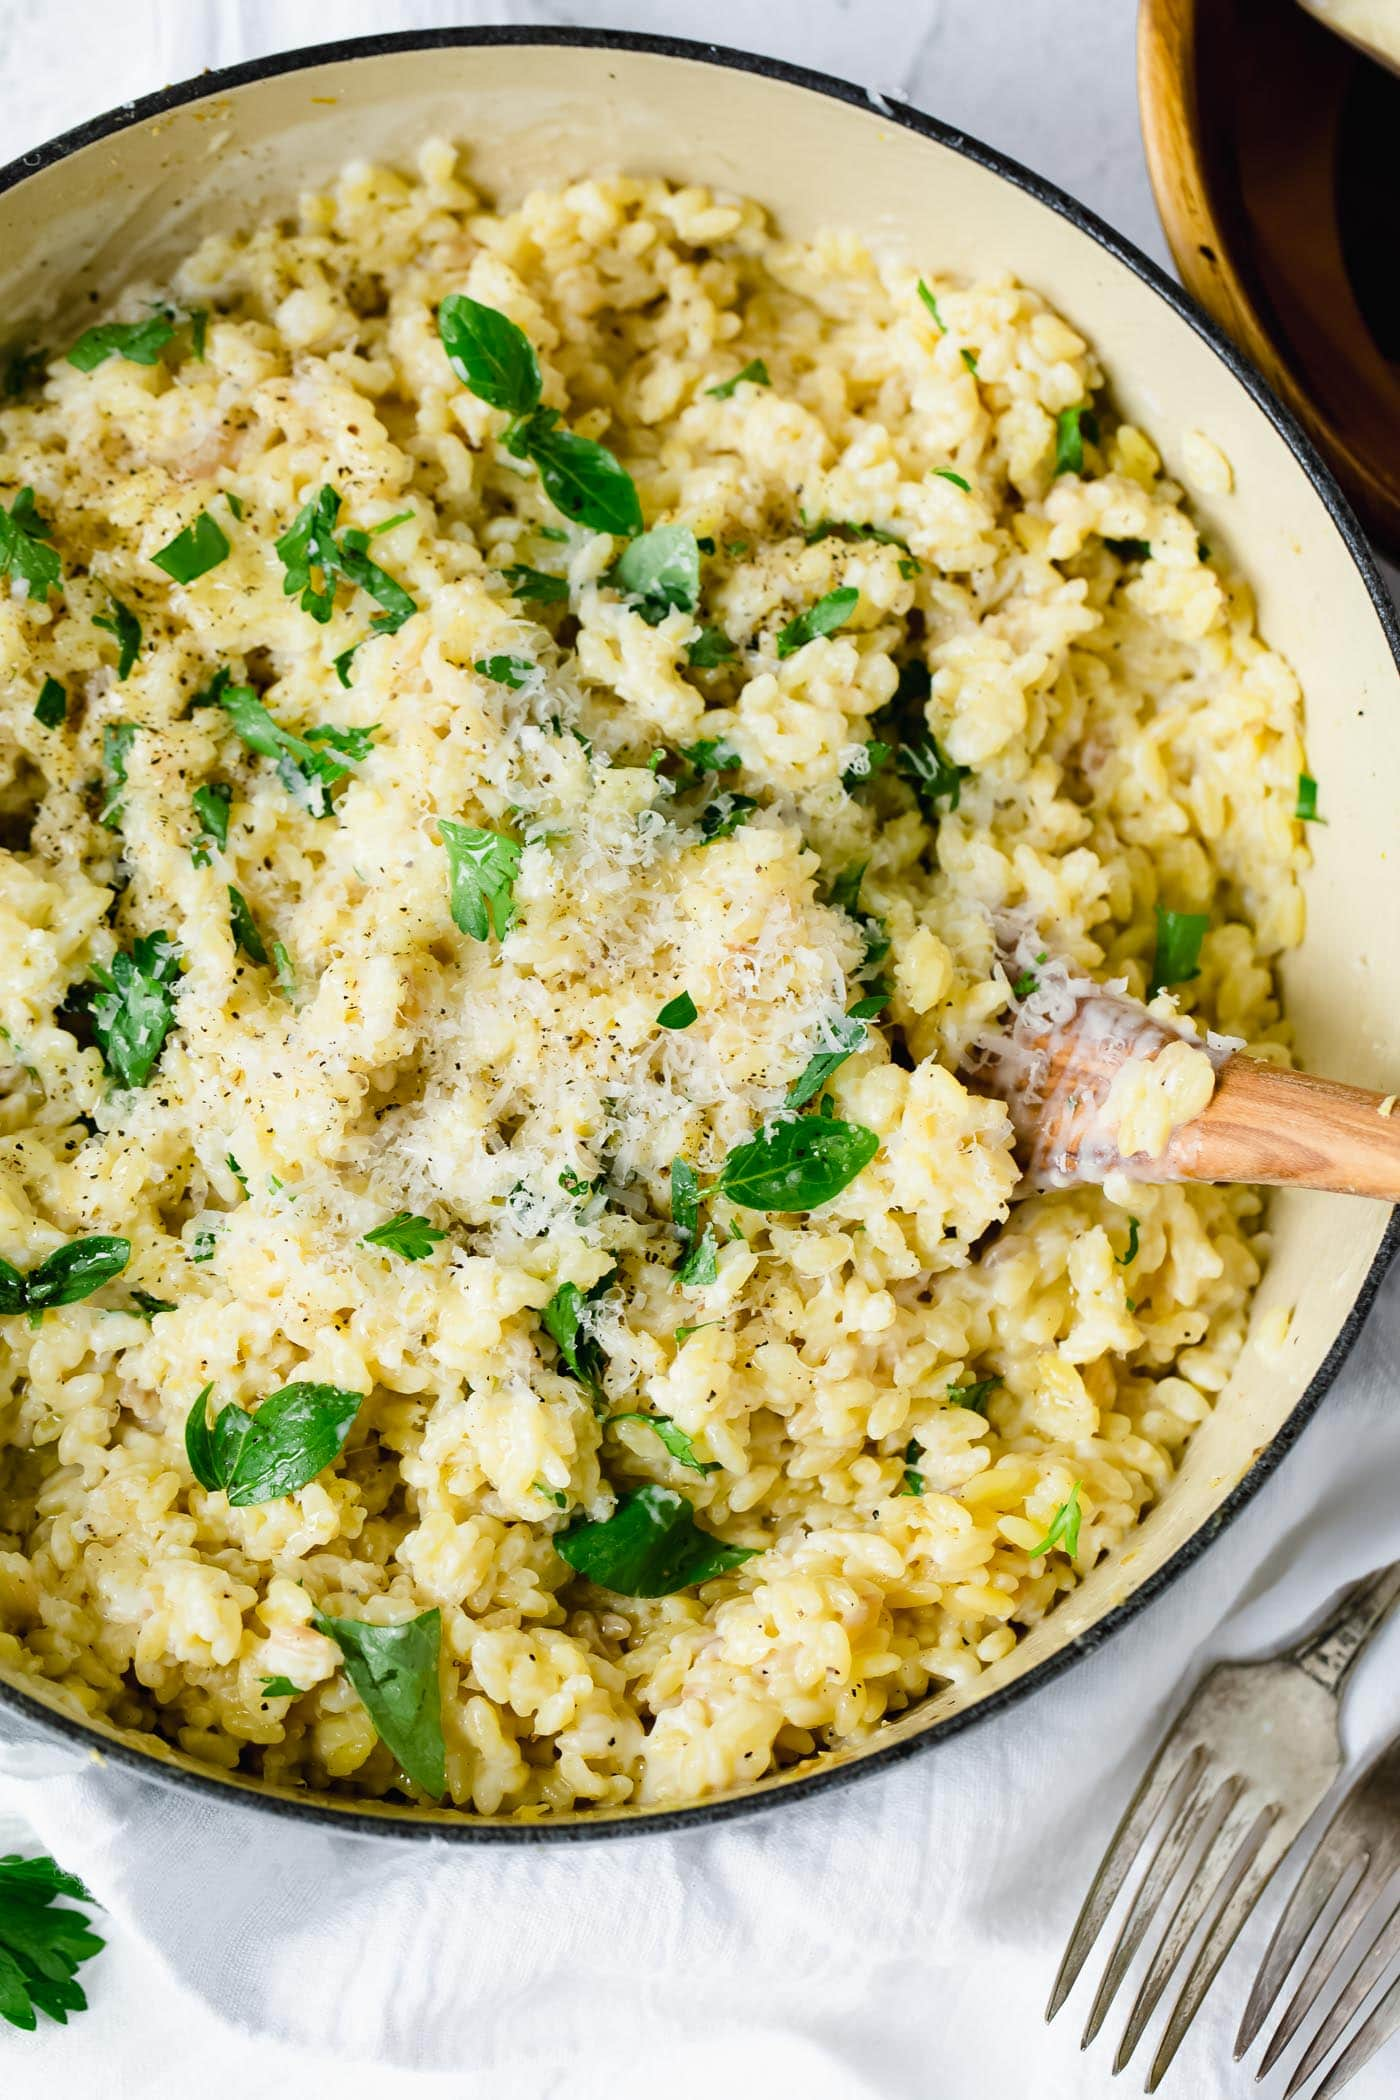 Creamy garlic parmesan orzo in a serving dish. There is a wooden spoon in the pasta. The pasta has been mixed with a creamy white sauce and fresh thyme leaves. Two forks are laying beside the bowl of pasta.